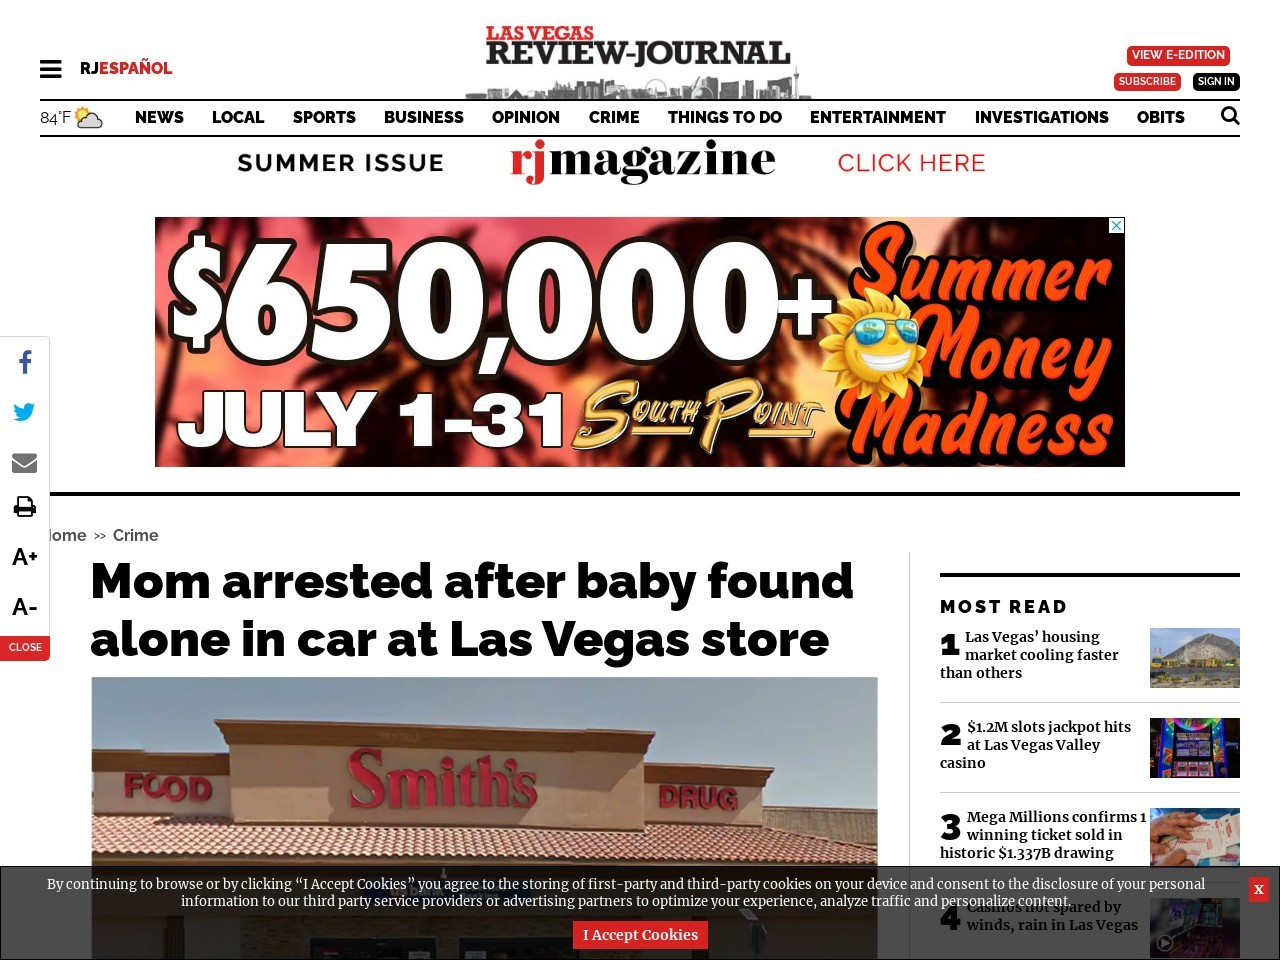 Mom arrested after baby found alone in car at Las Vegas store